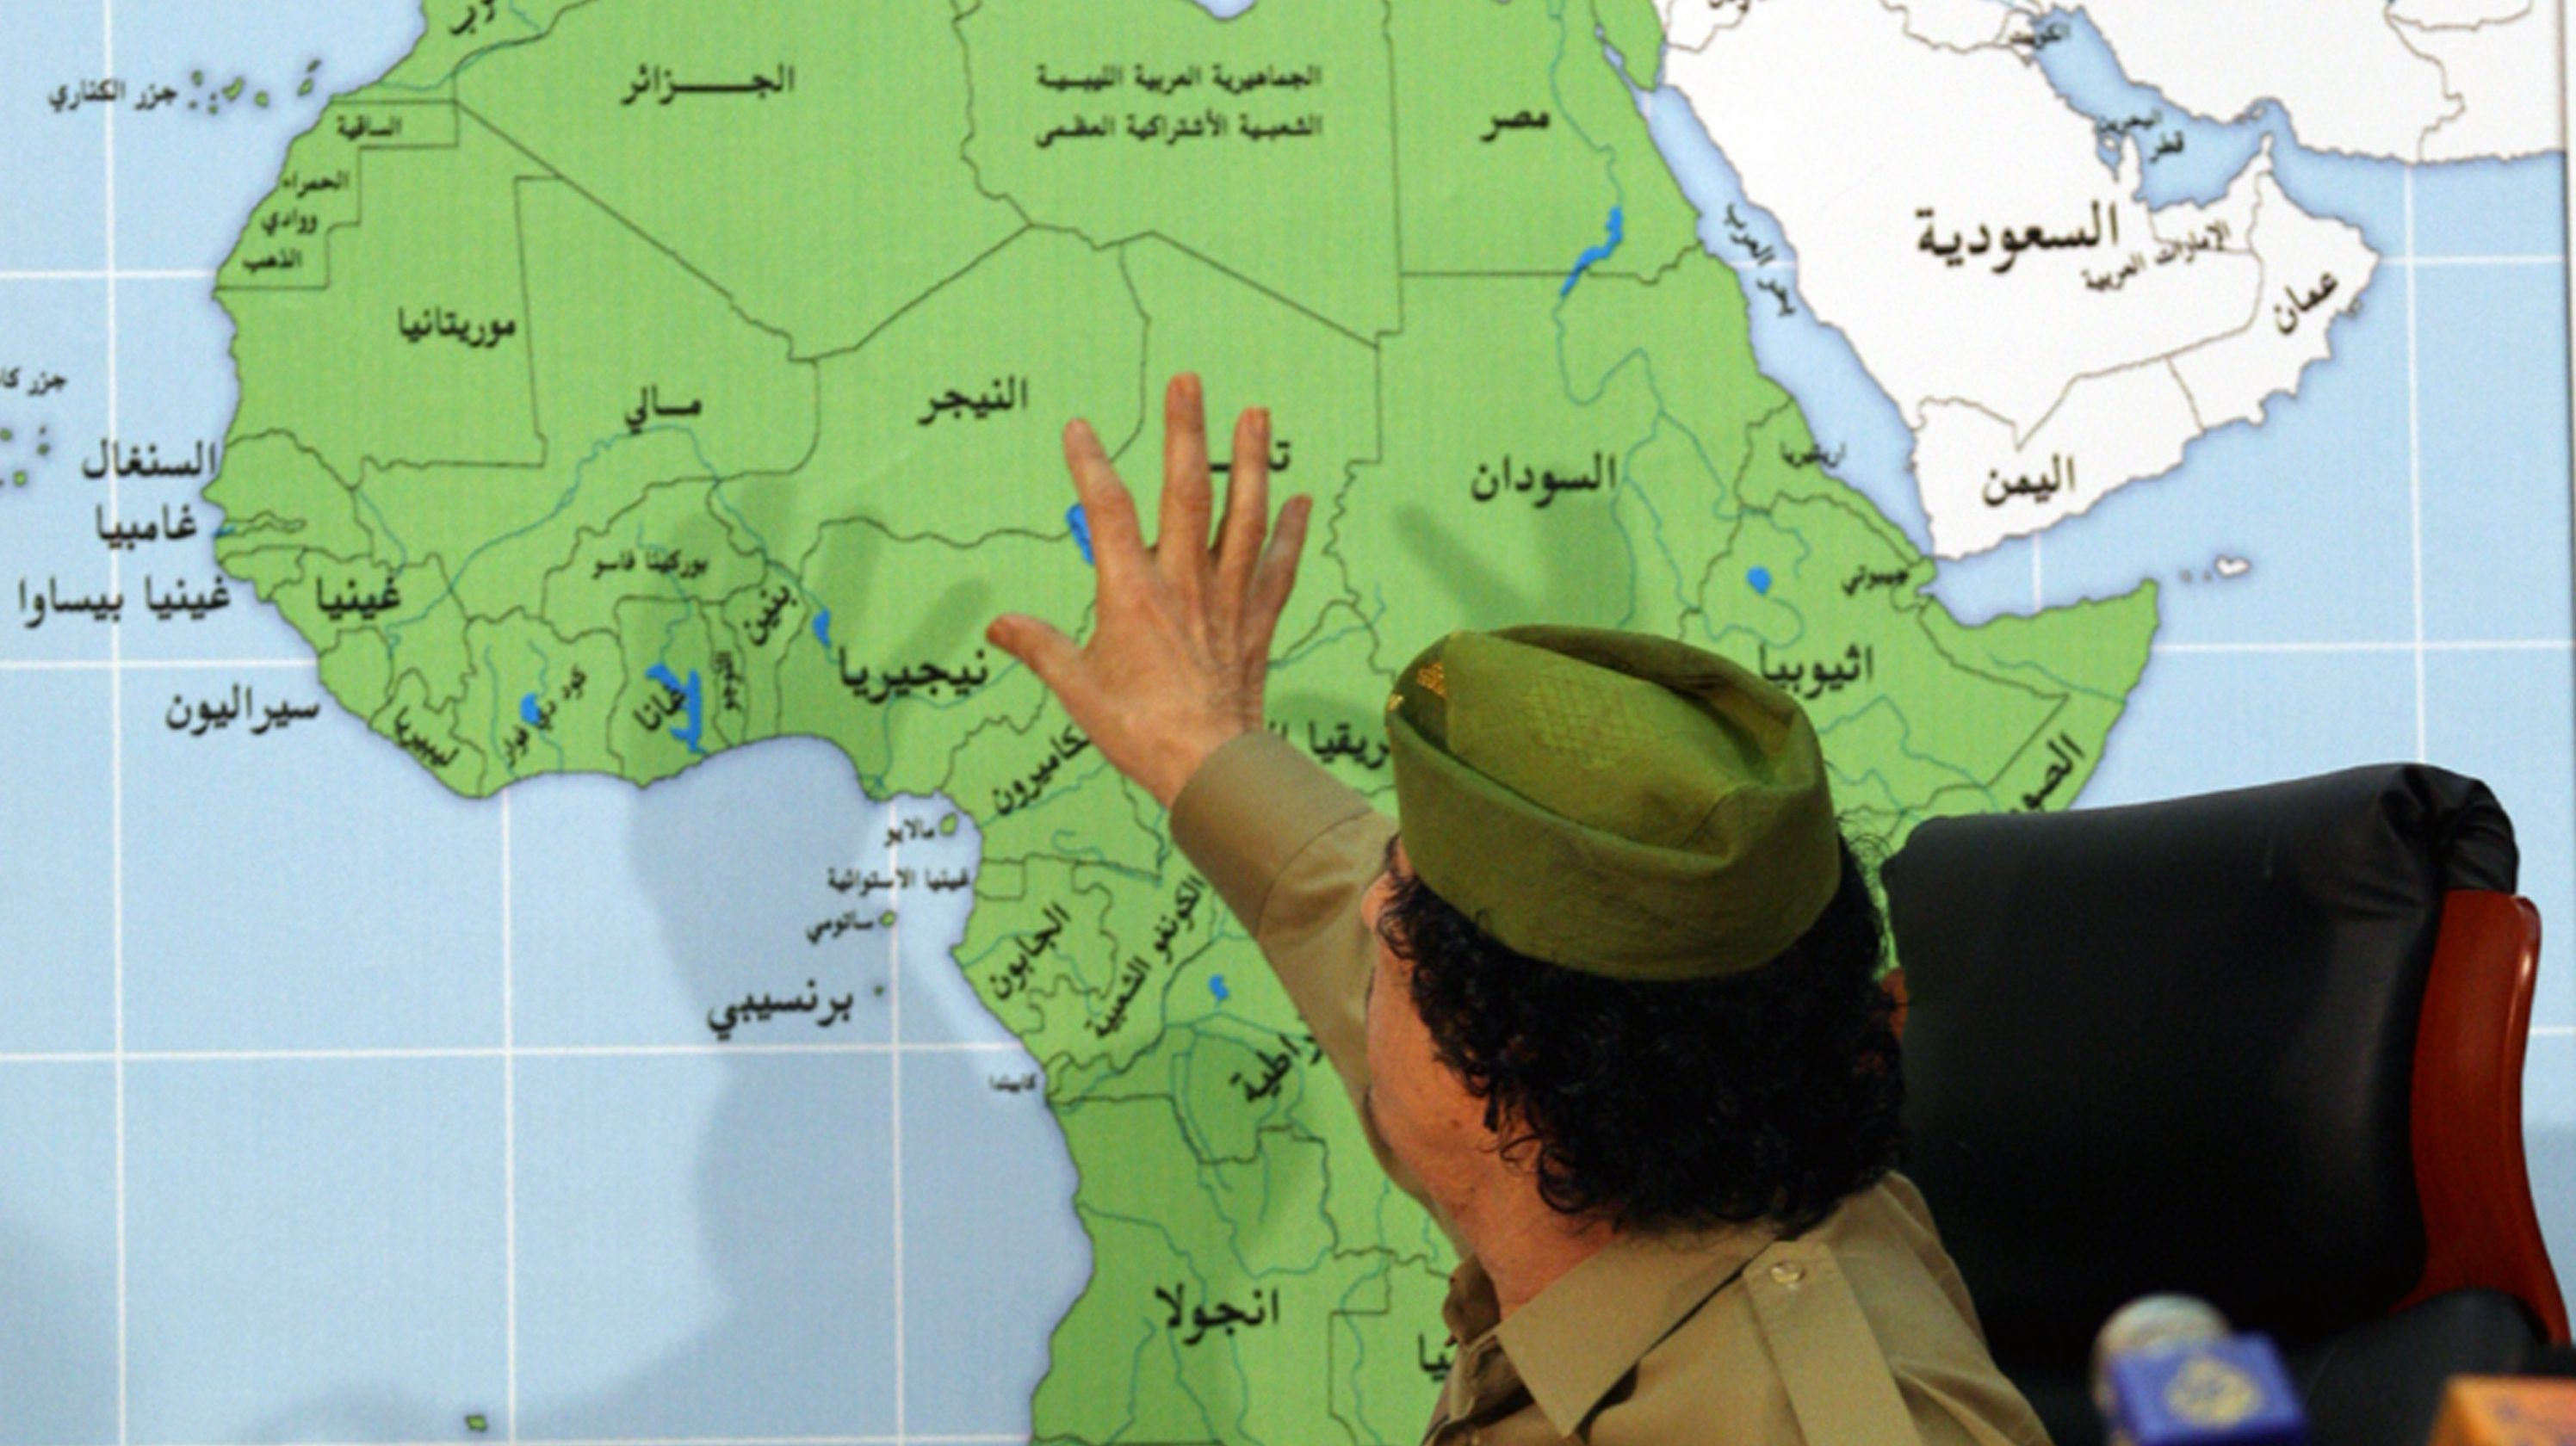 Libyan leader Moammar Gadhafi talks during a press conference in front of Africa map in Tripoli, Libya, Tuesday, Jan. 29, 2008.